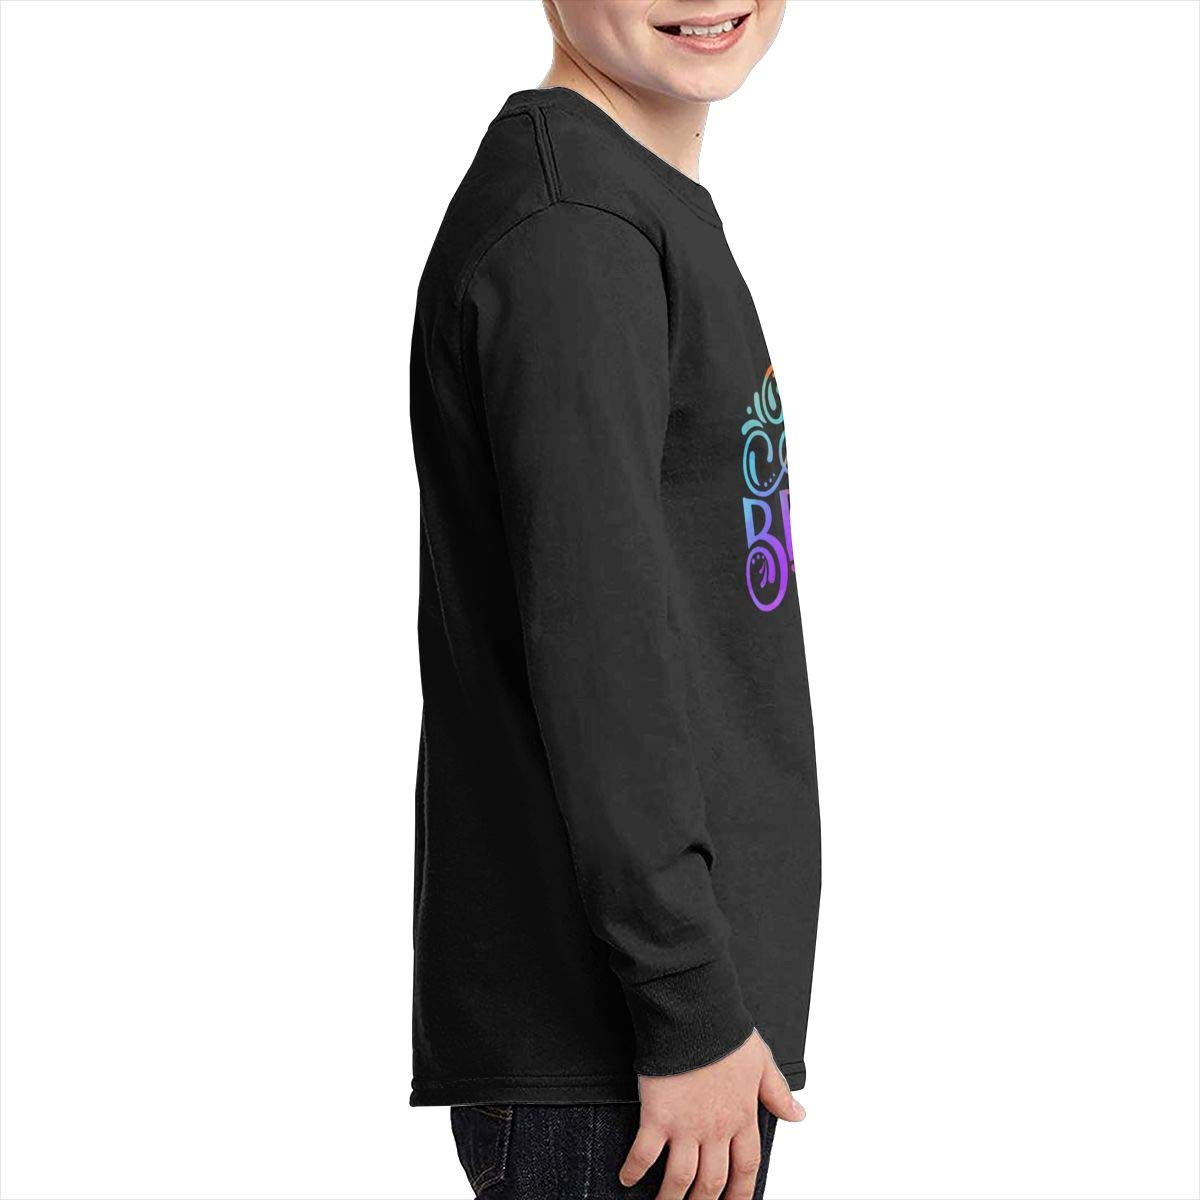 Optumus The Avett Brothers Kids Sweatshirts Long Sleeve T Shirt Boy Girl Children Teenagers Unisex Tee